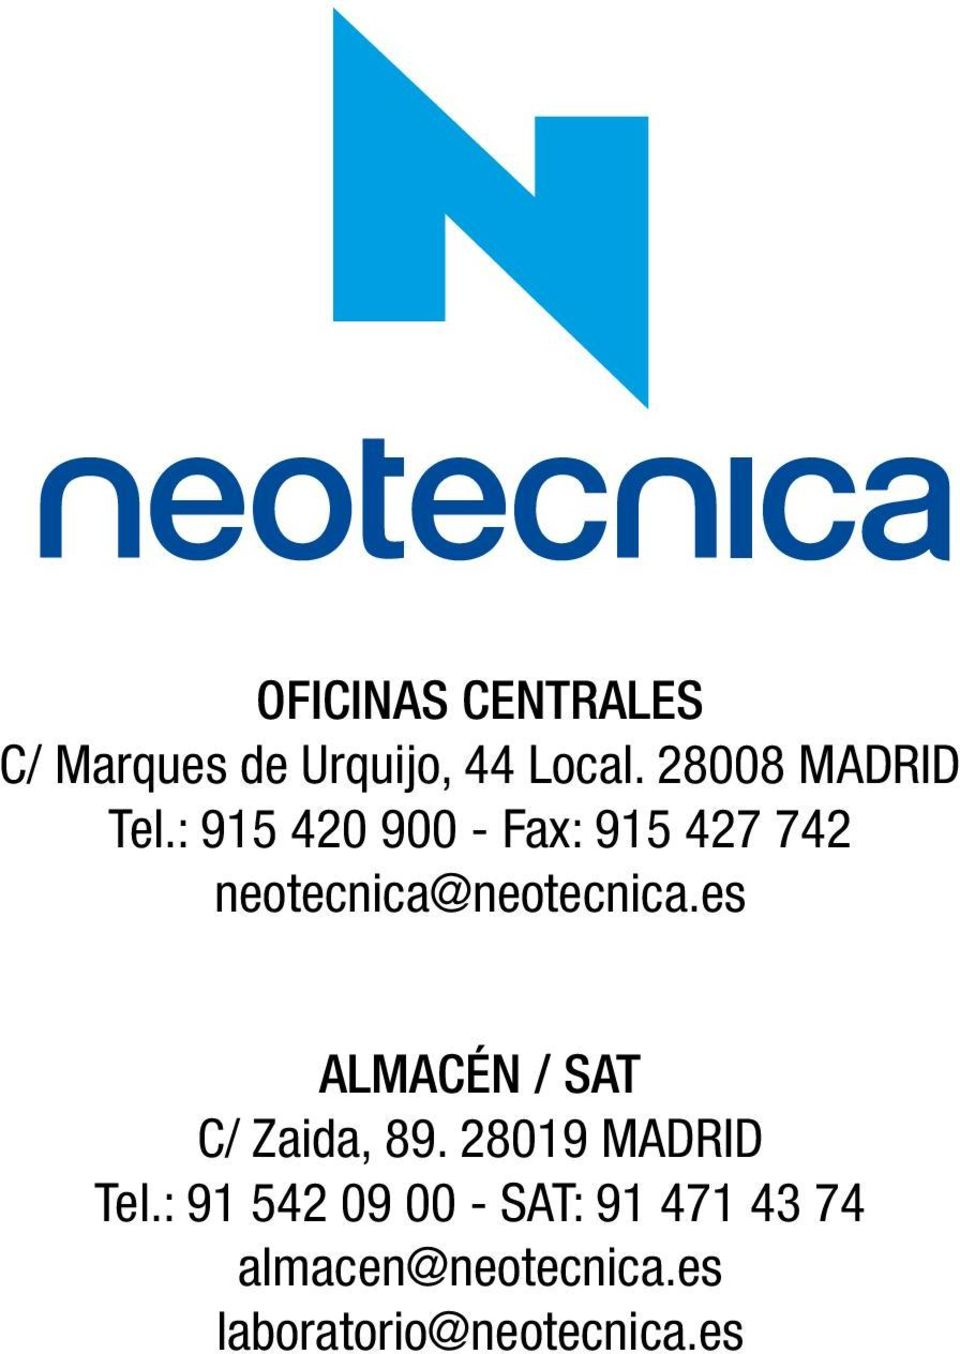 : 915 420 900 - Fax: 915 427 742 neotecnica@neotecnica.